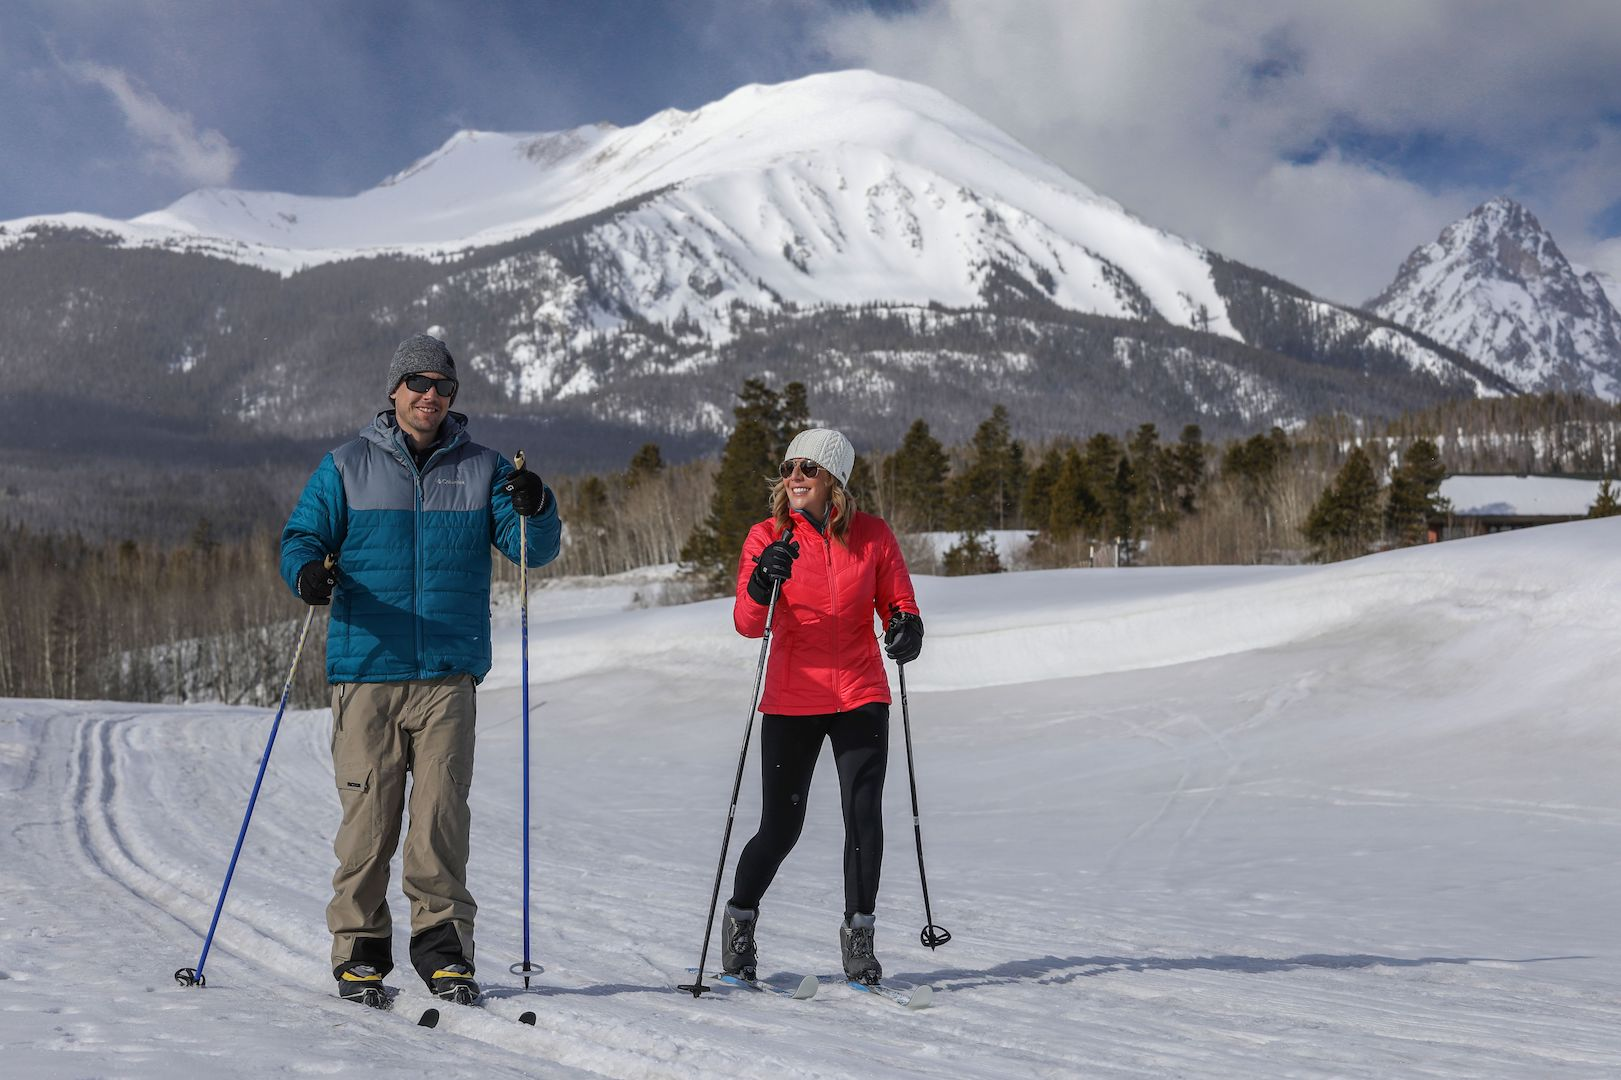 Cross-country skiers enjoy free winter trail in Silverthorne